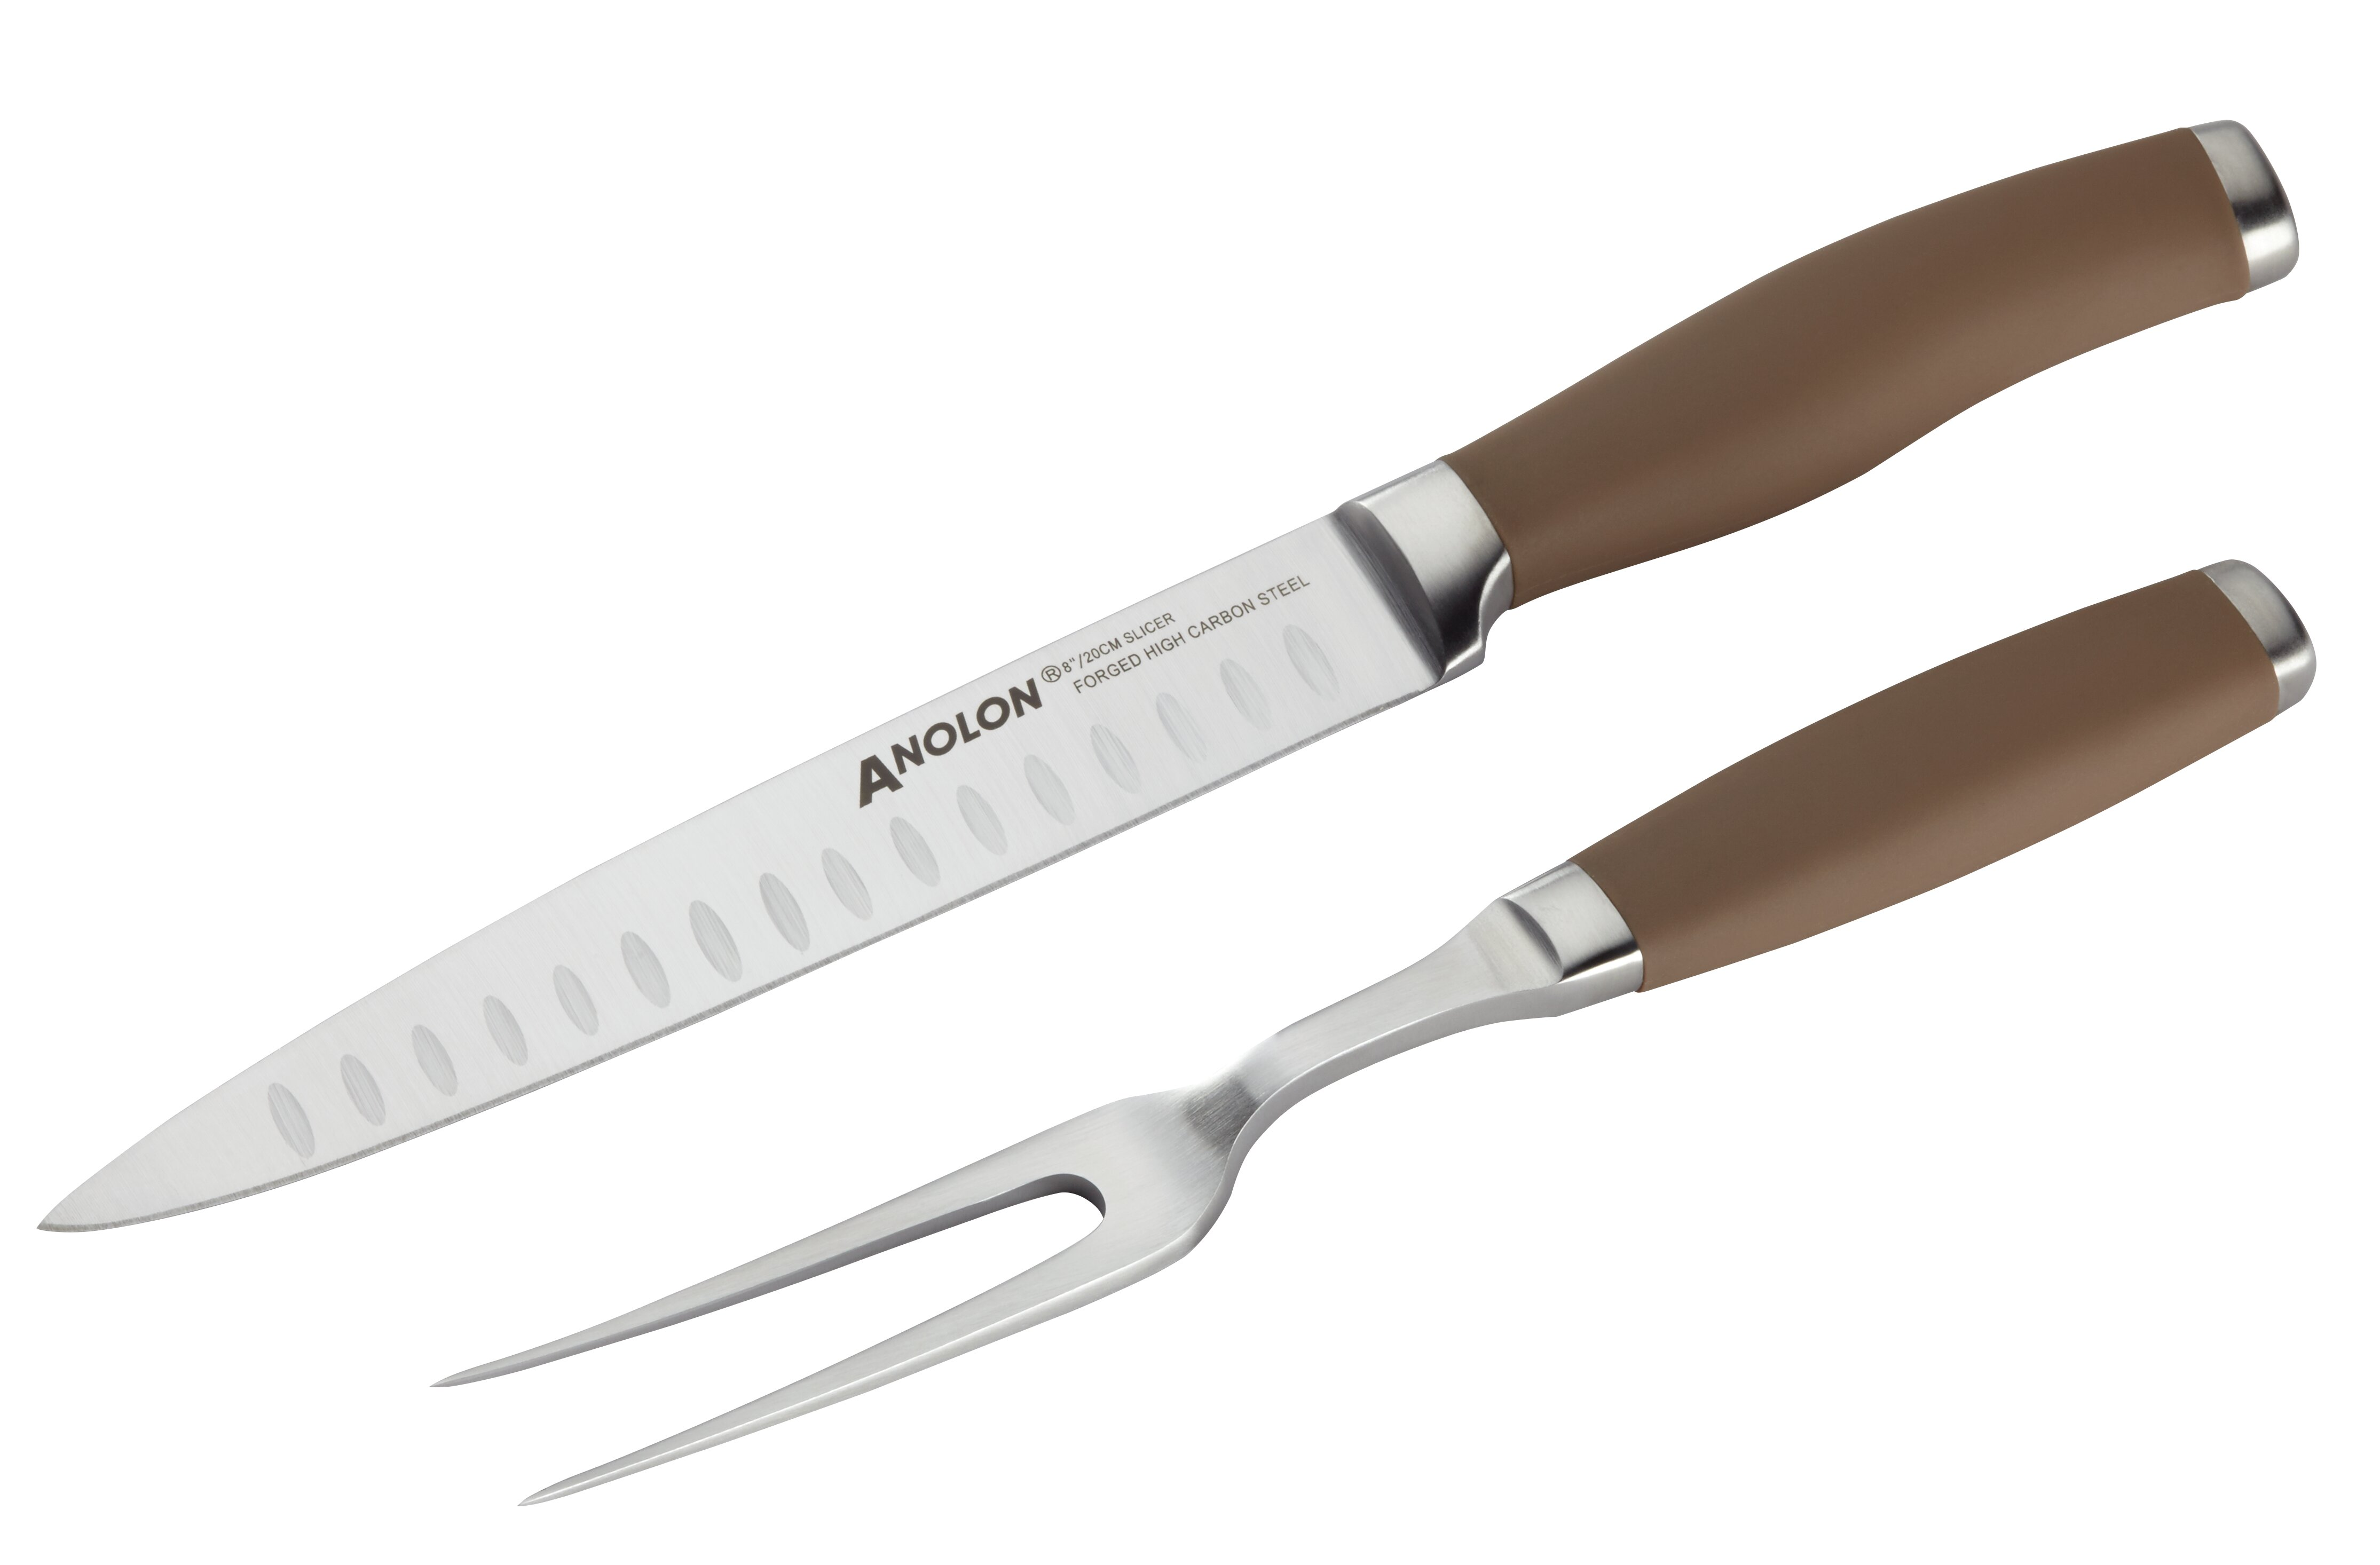 Anolon 2 Piece Carving Knife and Meat Fork Set | Wayfair